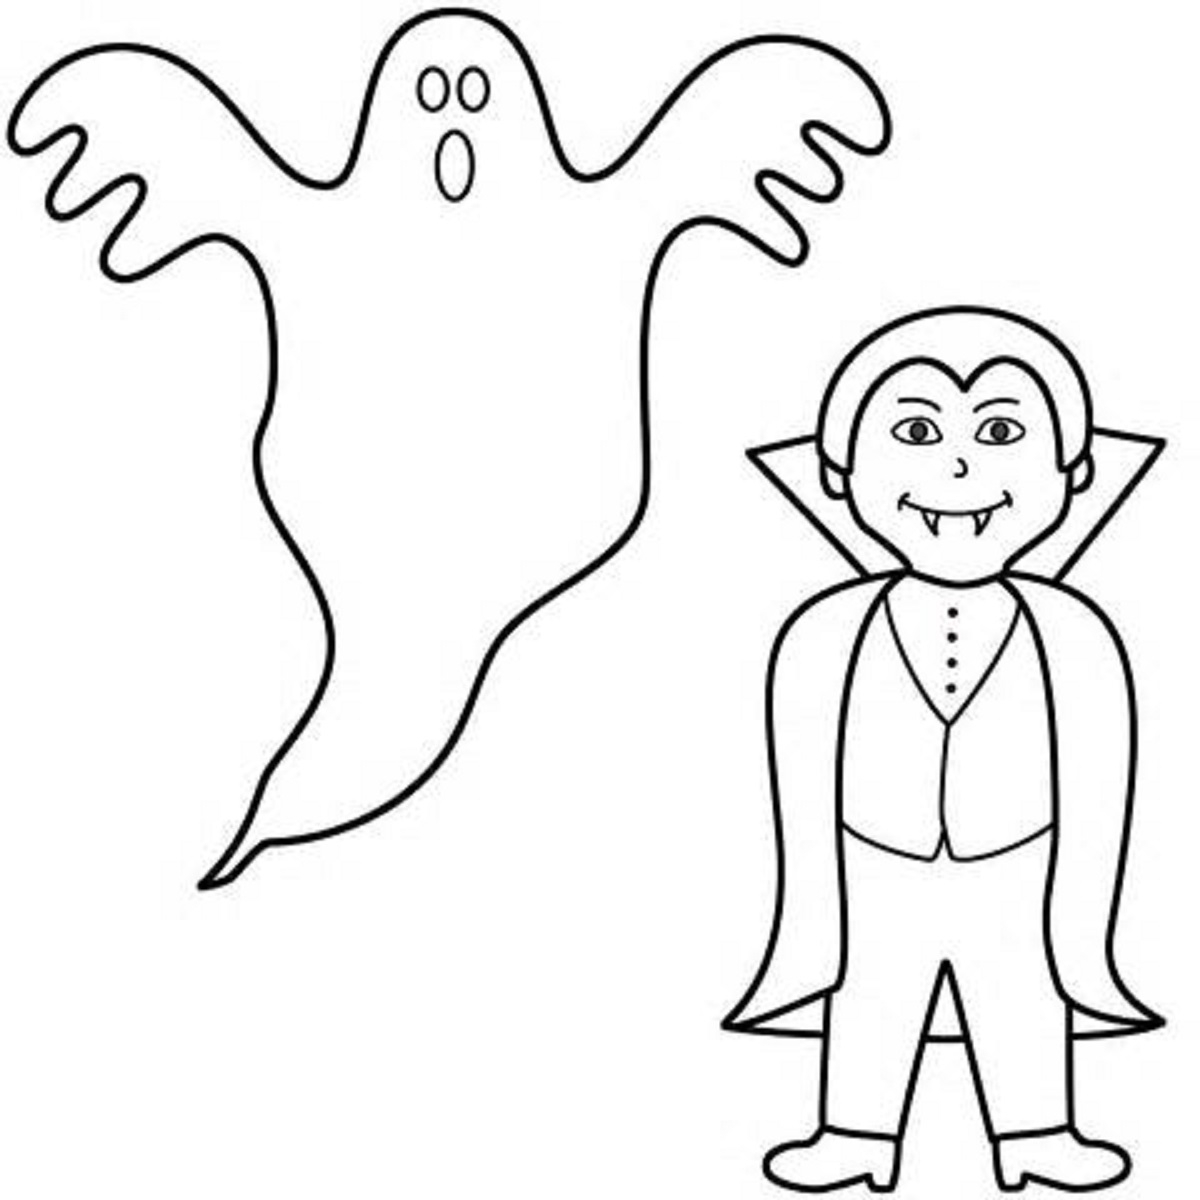 Cute Halloween Coloring Pages Printable Easy Coloring Pages Halloween With Cute Halloween Coloring Pages